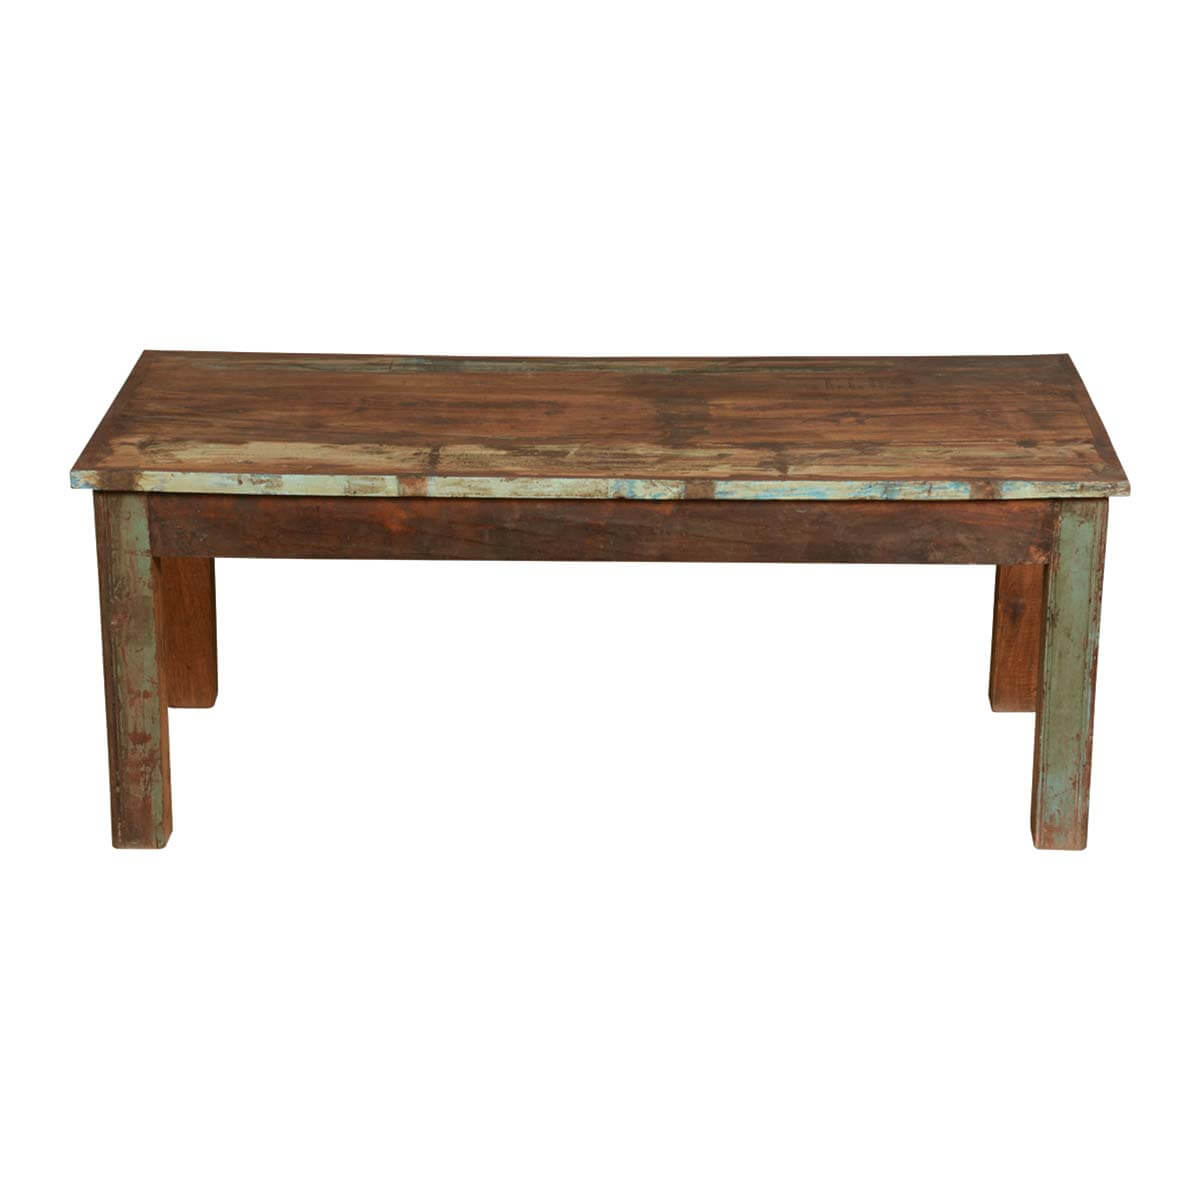 Rustic farmhouse coffee table farmhouse distressed reclaimed wood rustic coffee table Farmhouse coffee tables